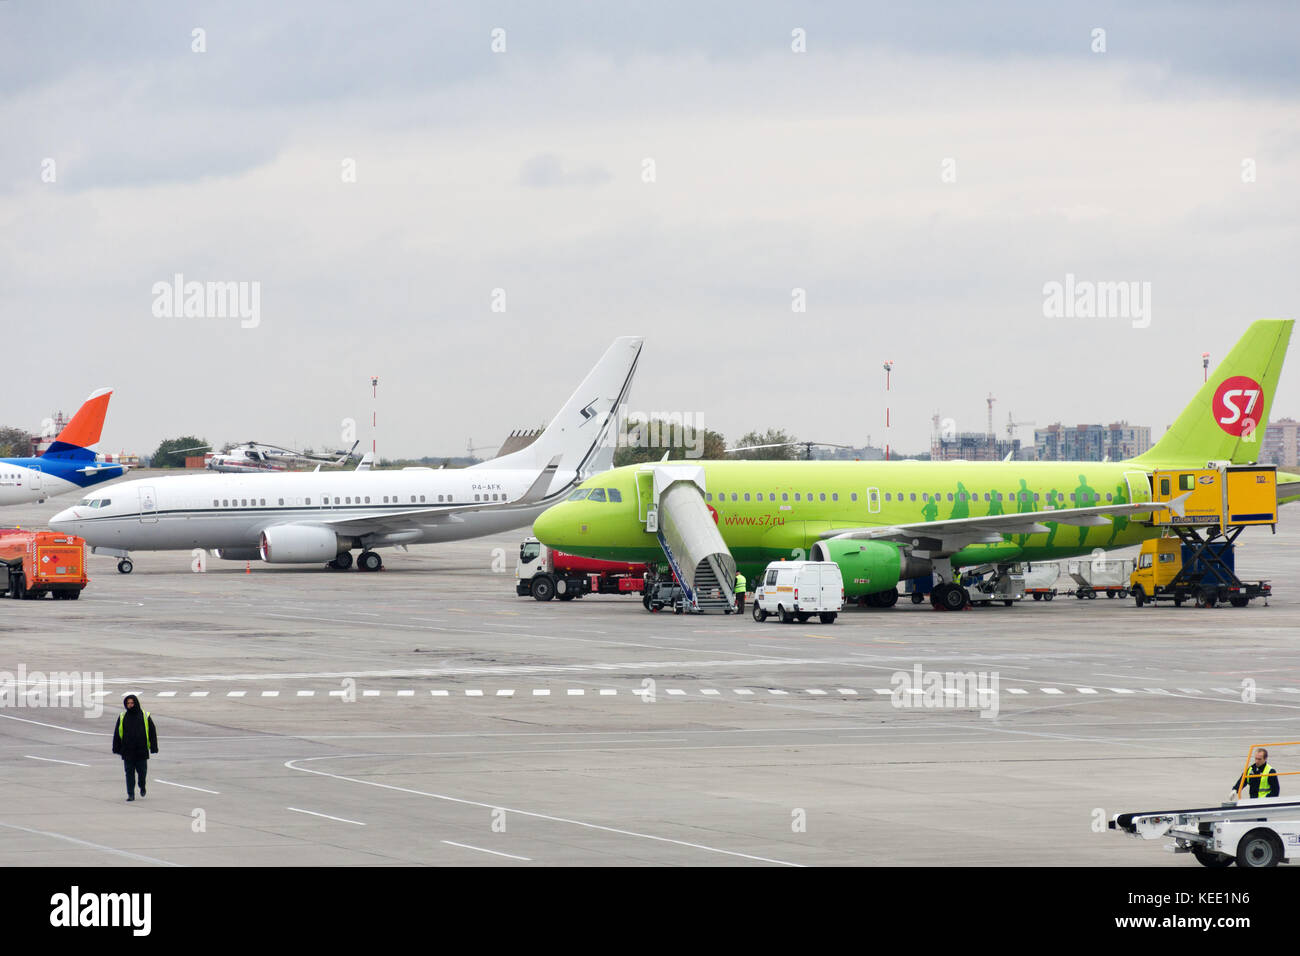 Rostov, Russia, 10-15-2017: Aircraft are serviced at the parking lot at the airport. - Stock Image